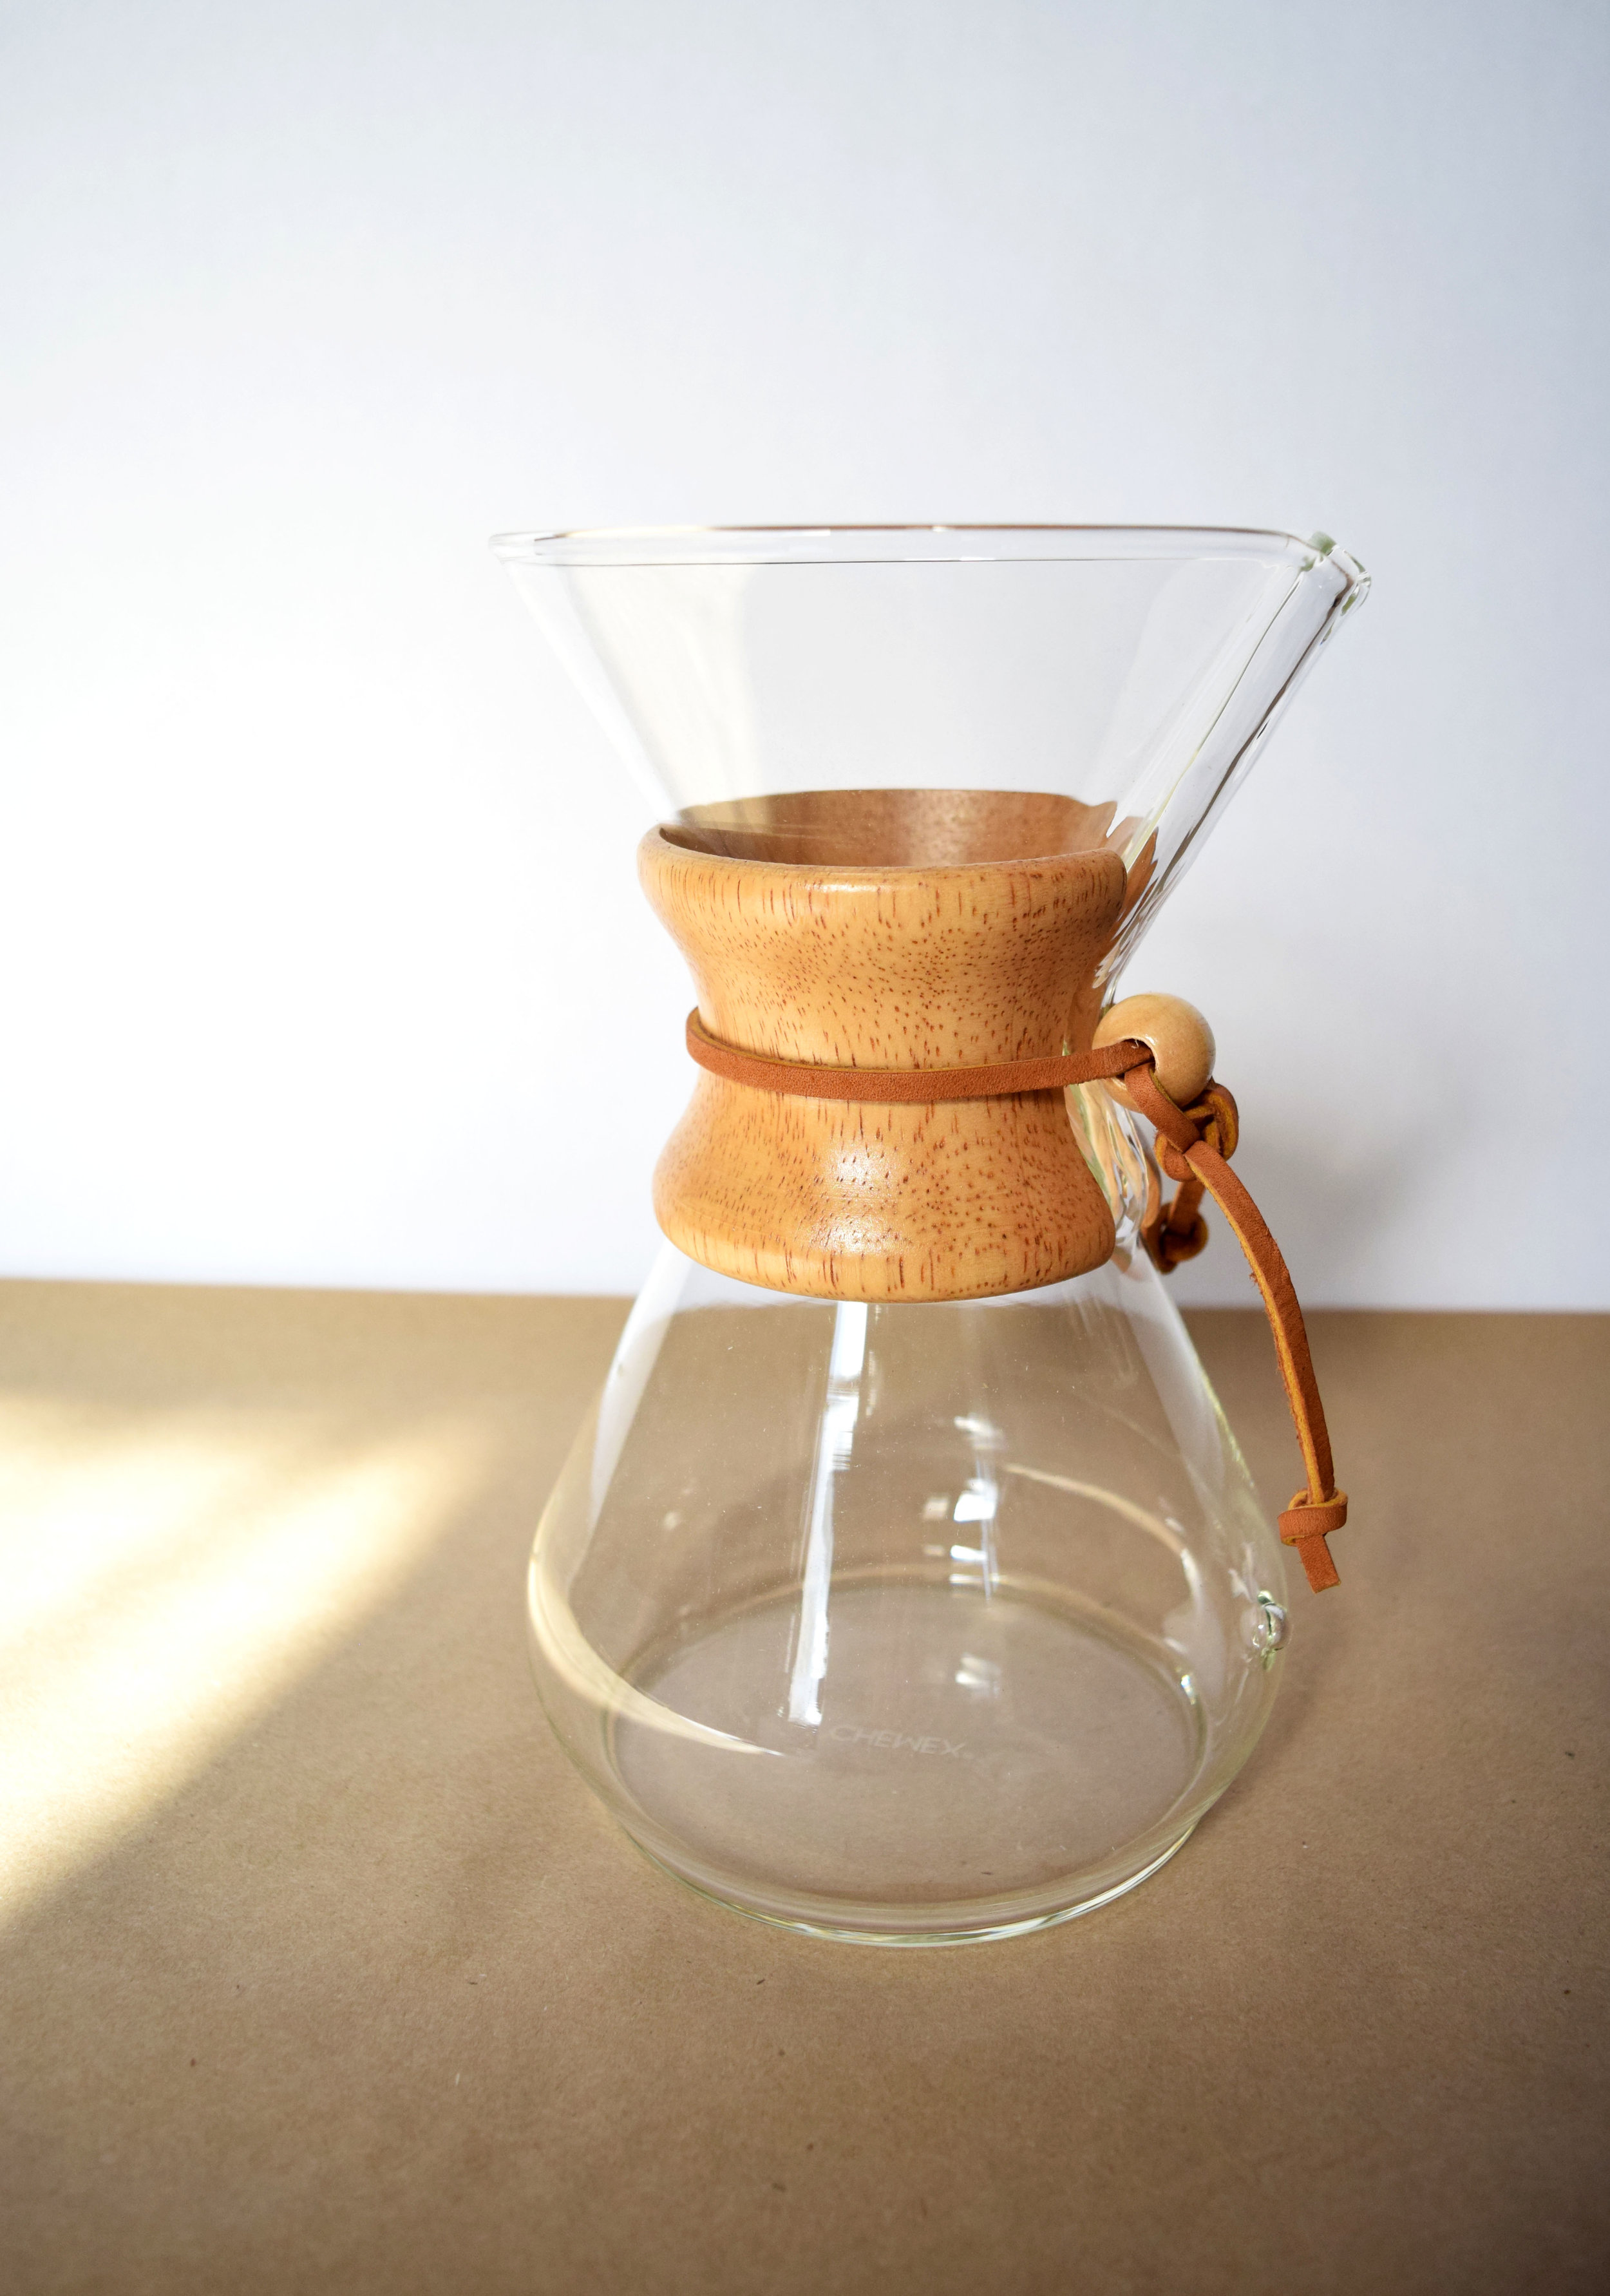 Find a pour over system that fits your needs & style -